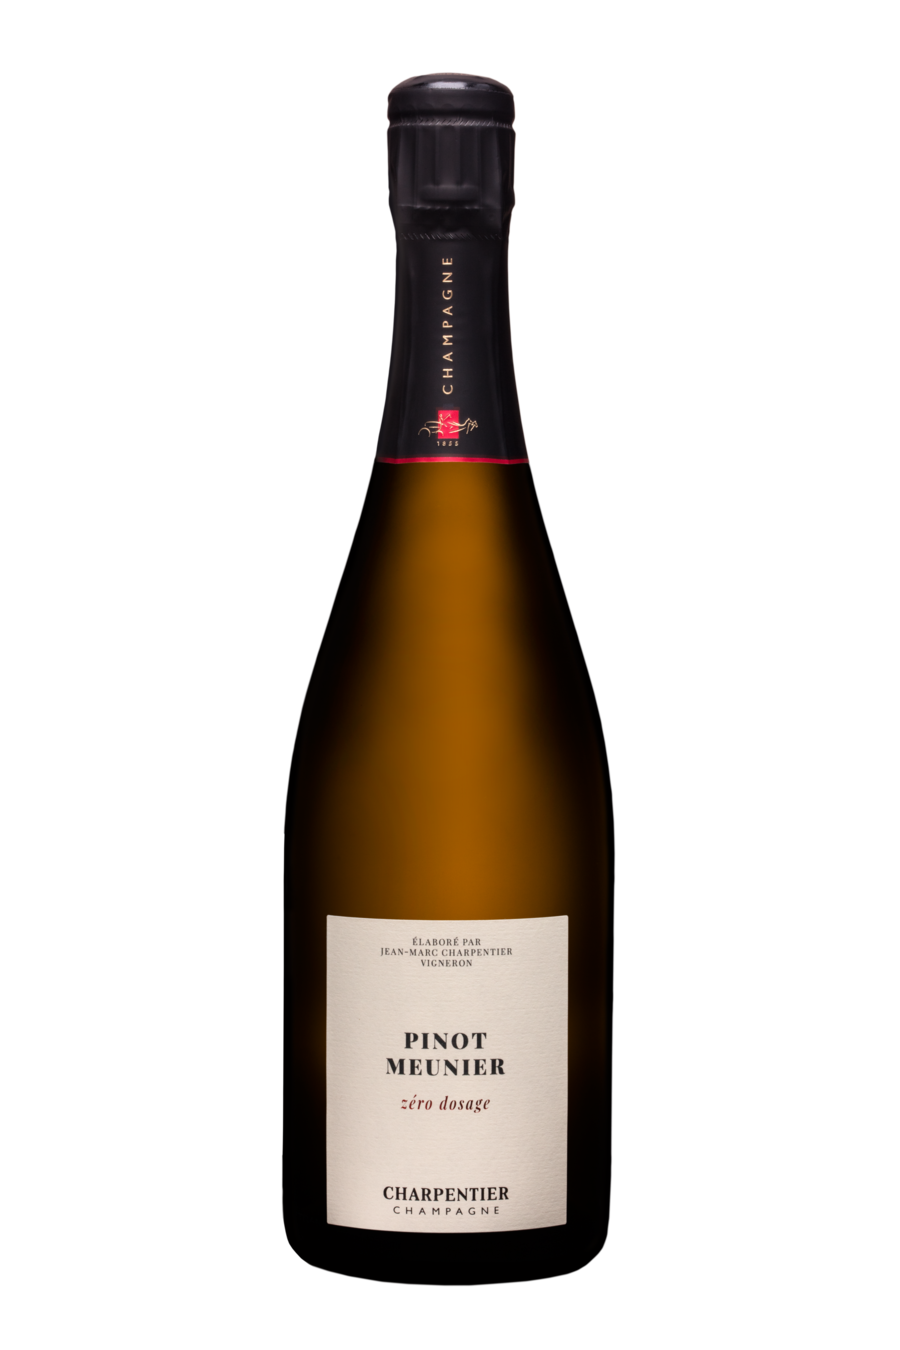 Champagne Charpentier (Charly-Sur-Marne) Pinot Meunier Zéro Dosage